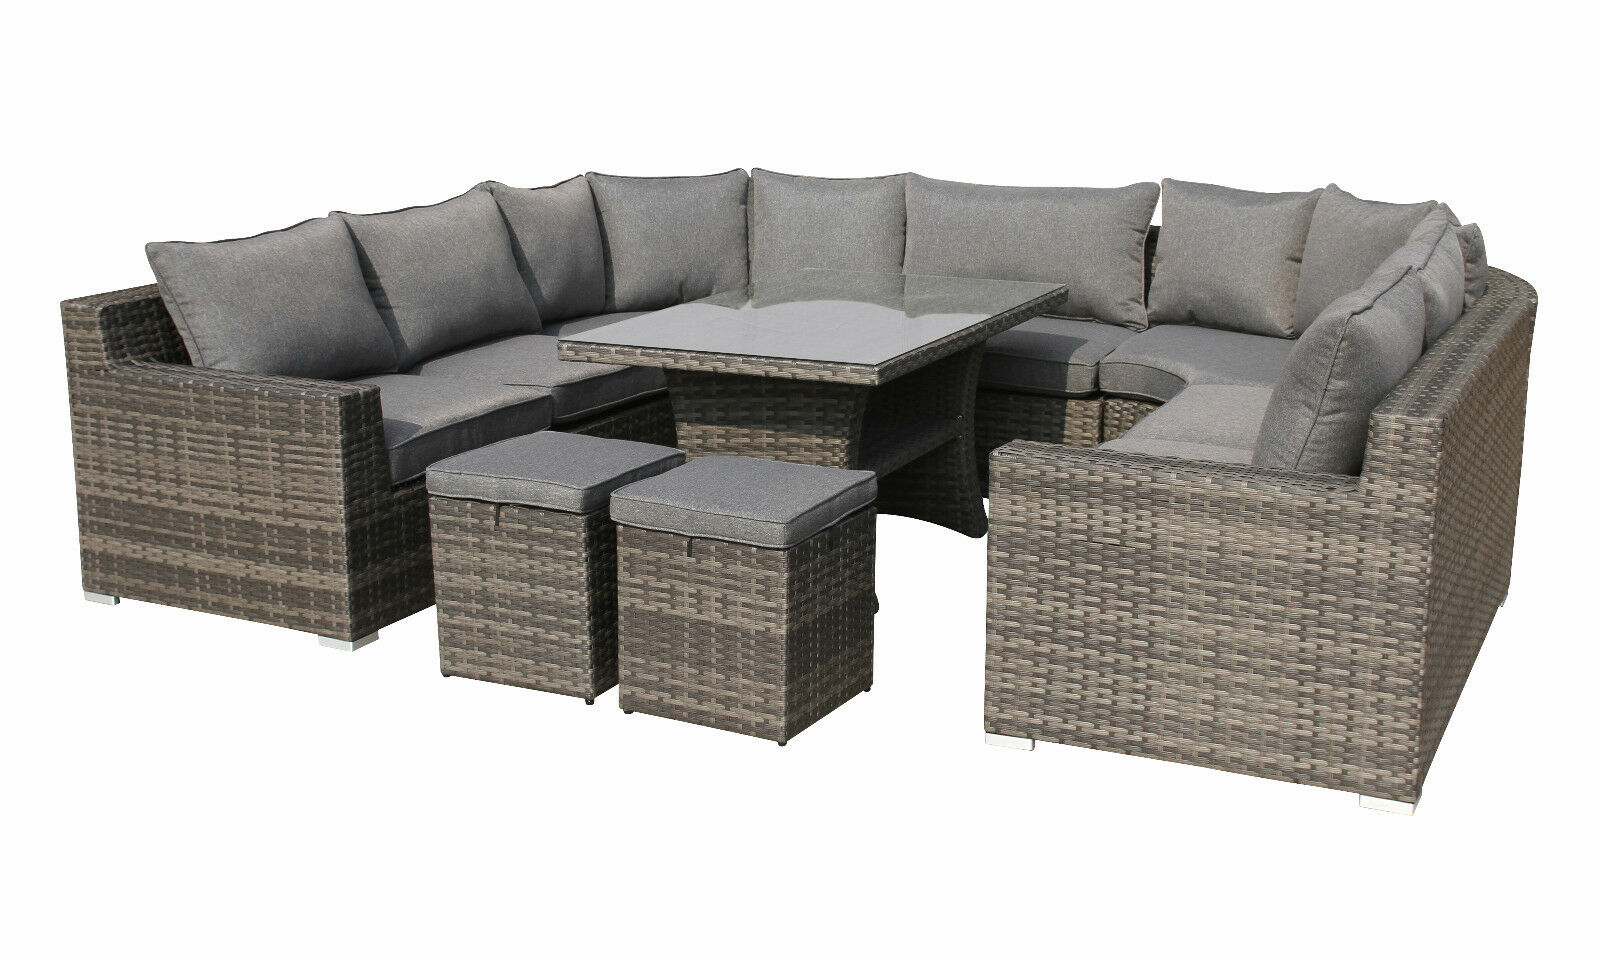 xxl polyrattan lounge set epic sitzgruppe gartenm bel garnitur alu grau gruppe eur. Black Bedroom Furniture Sets. Home Design Ideas